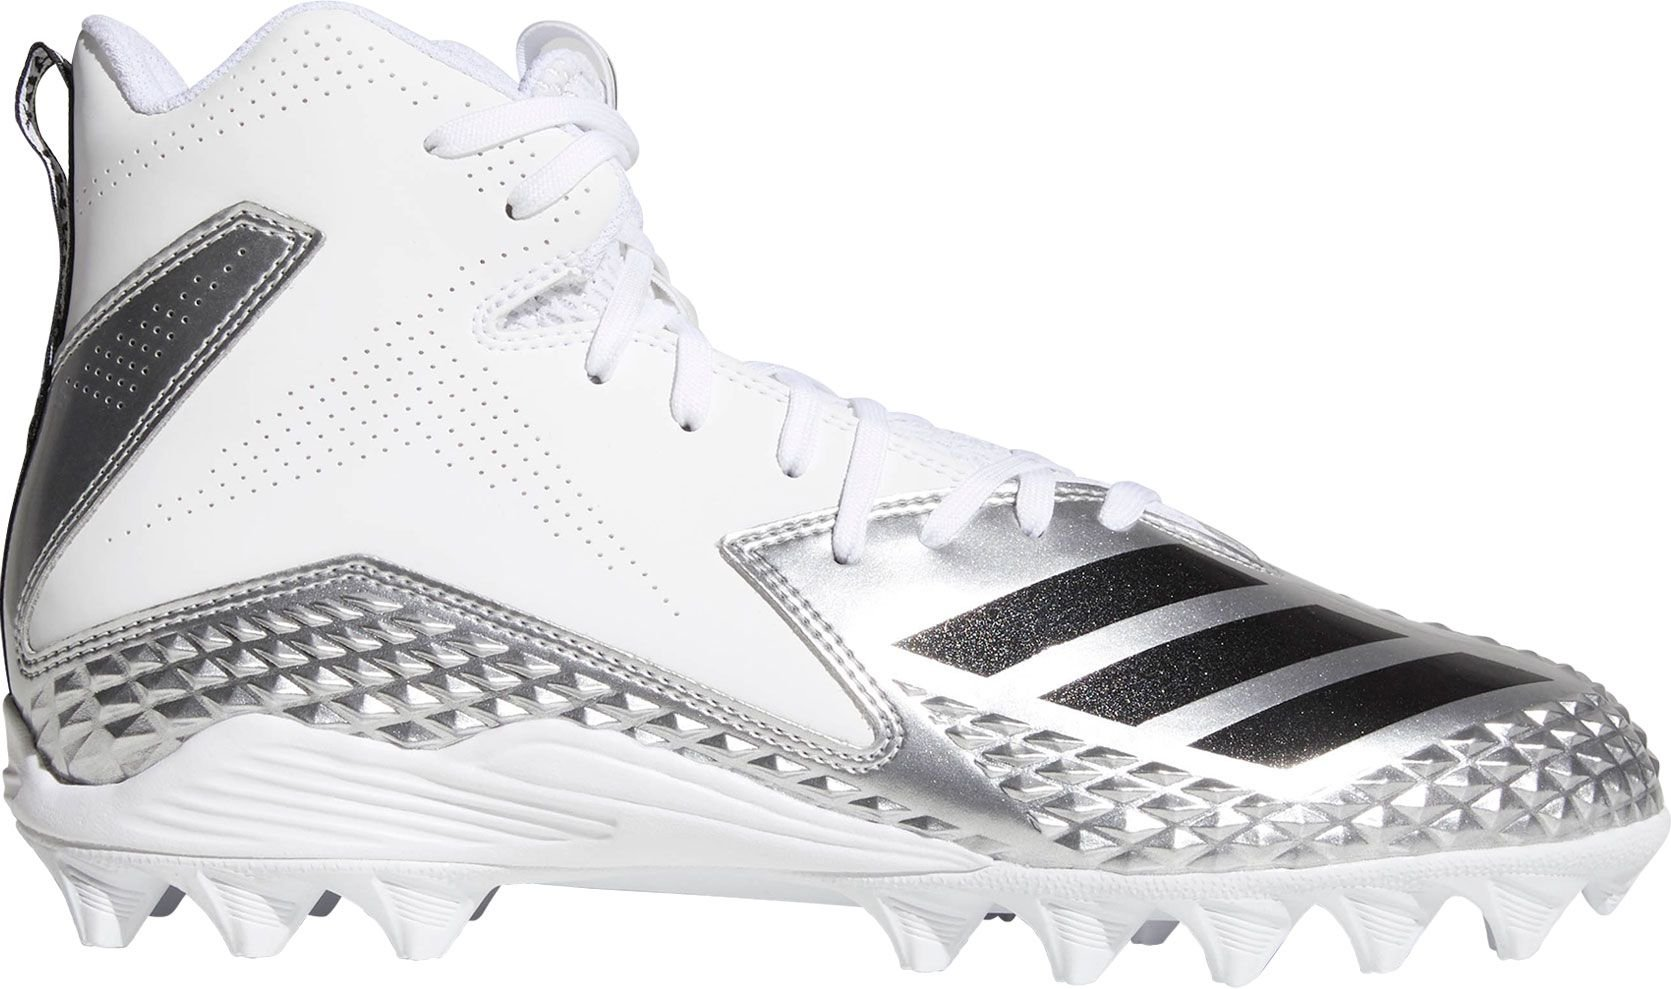 adidas Mens Freak Mid MD Von Football Cleats (White/Silver / 8 D(M) US) by adidas